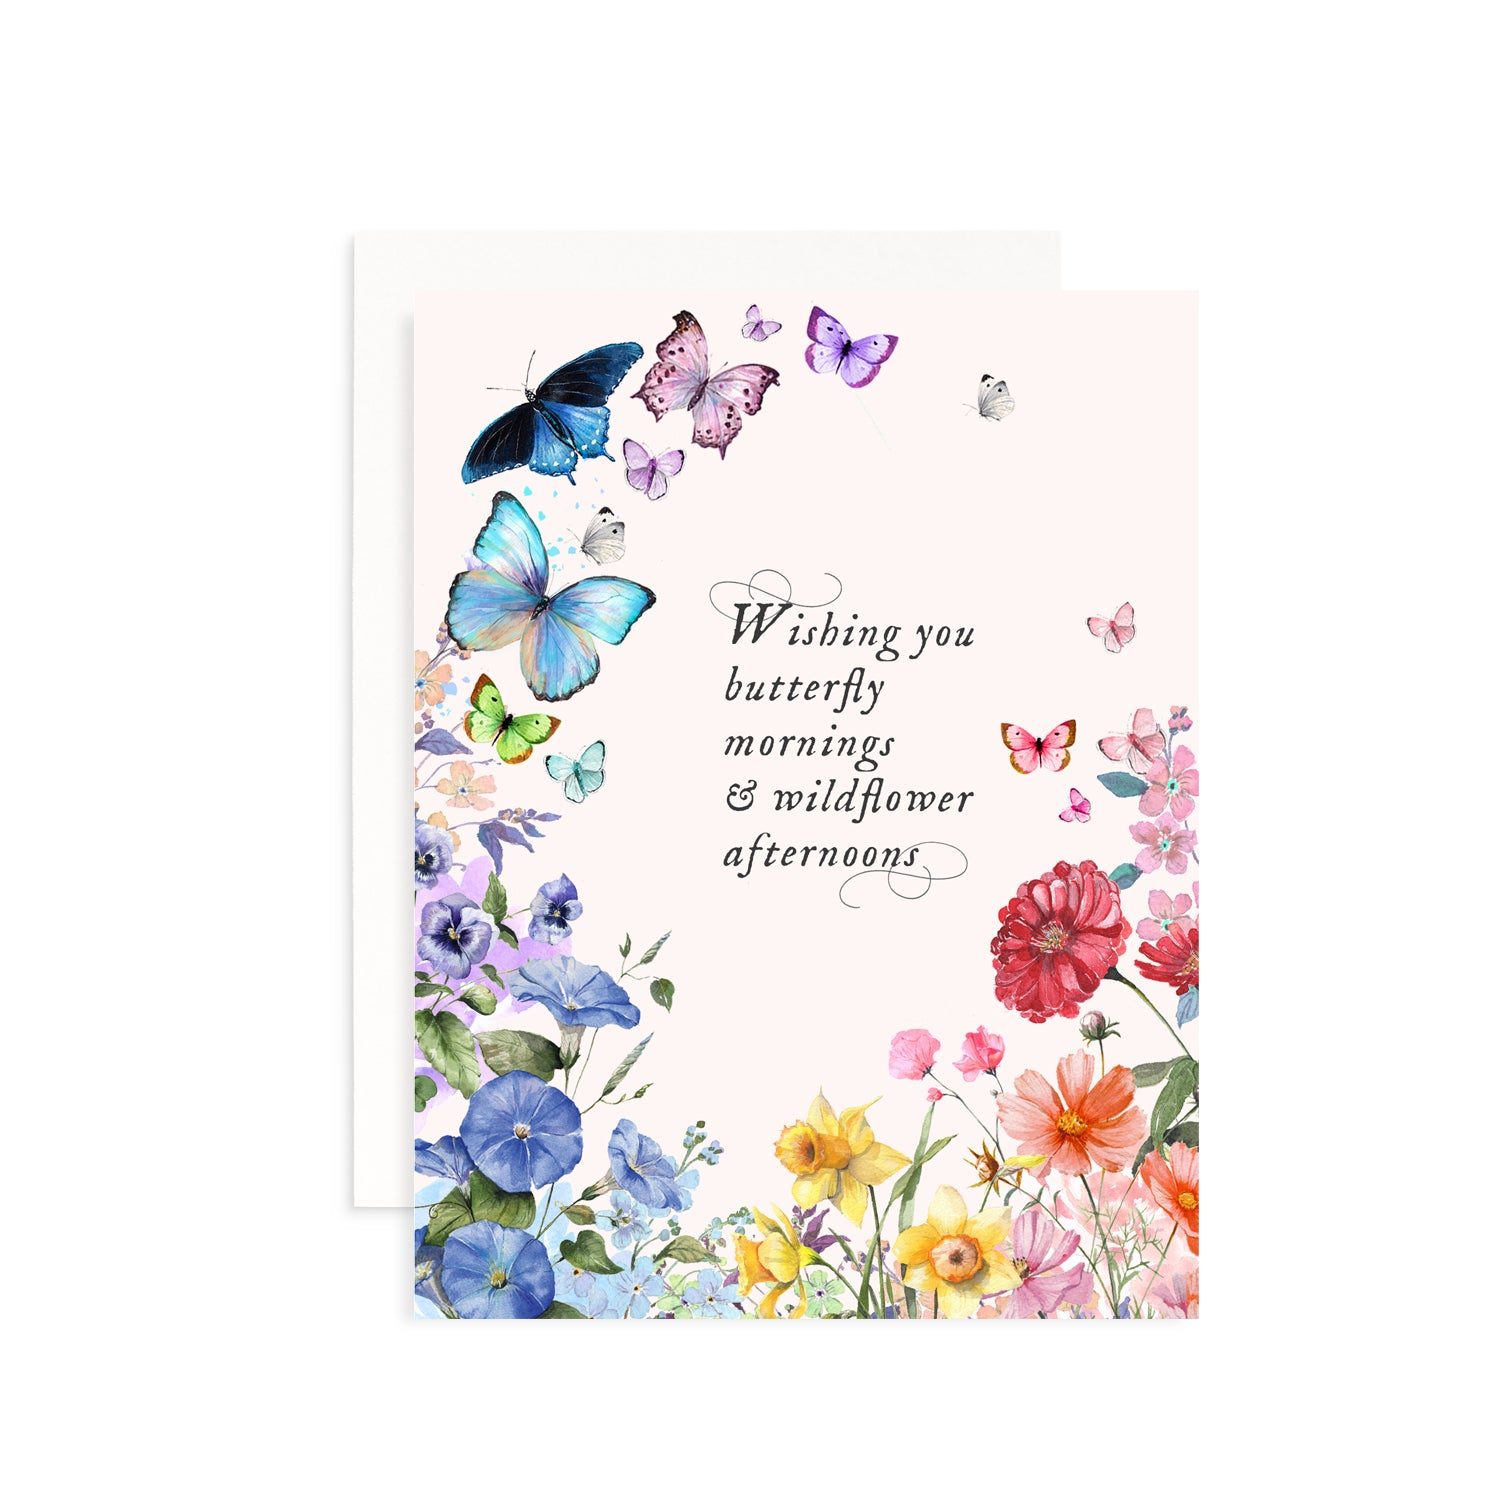 Butterfly Mornings & Wildflowers Afternoons Card